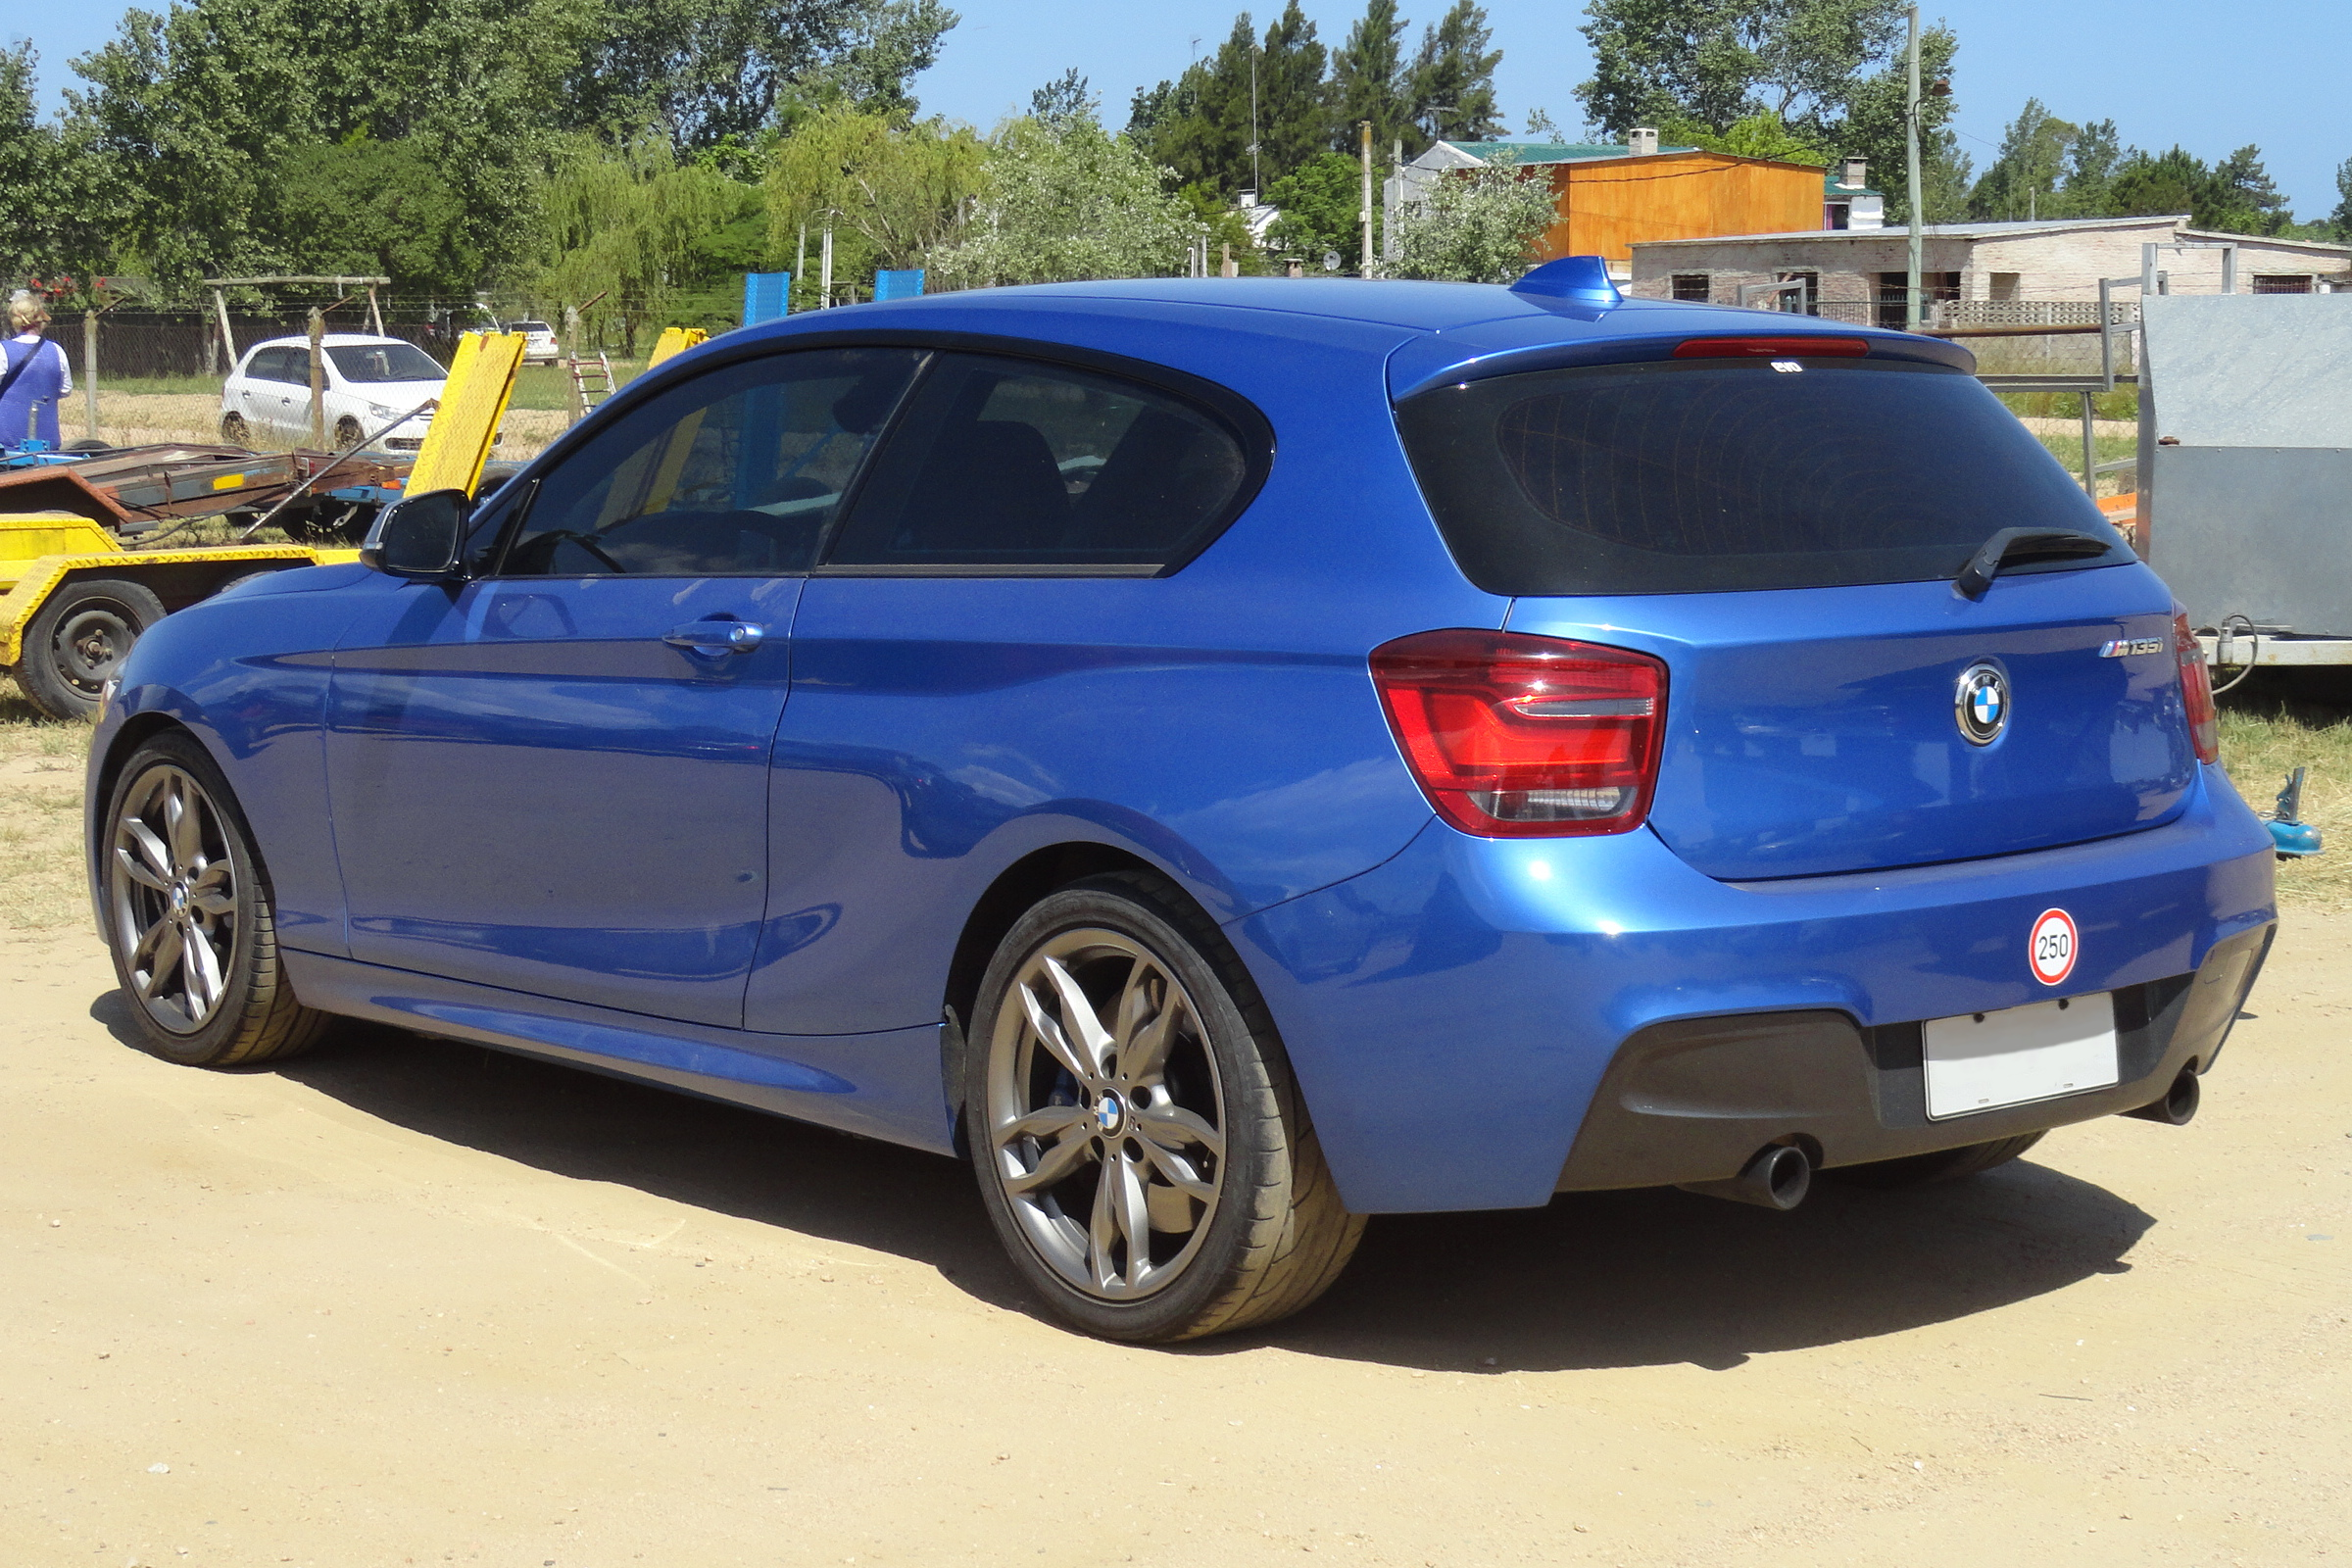 BMW M135i F21 rear view in blue